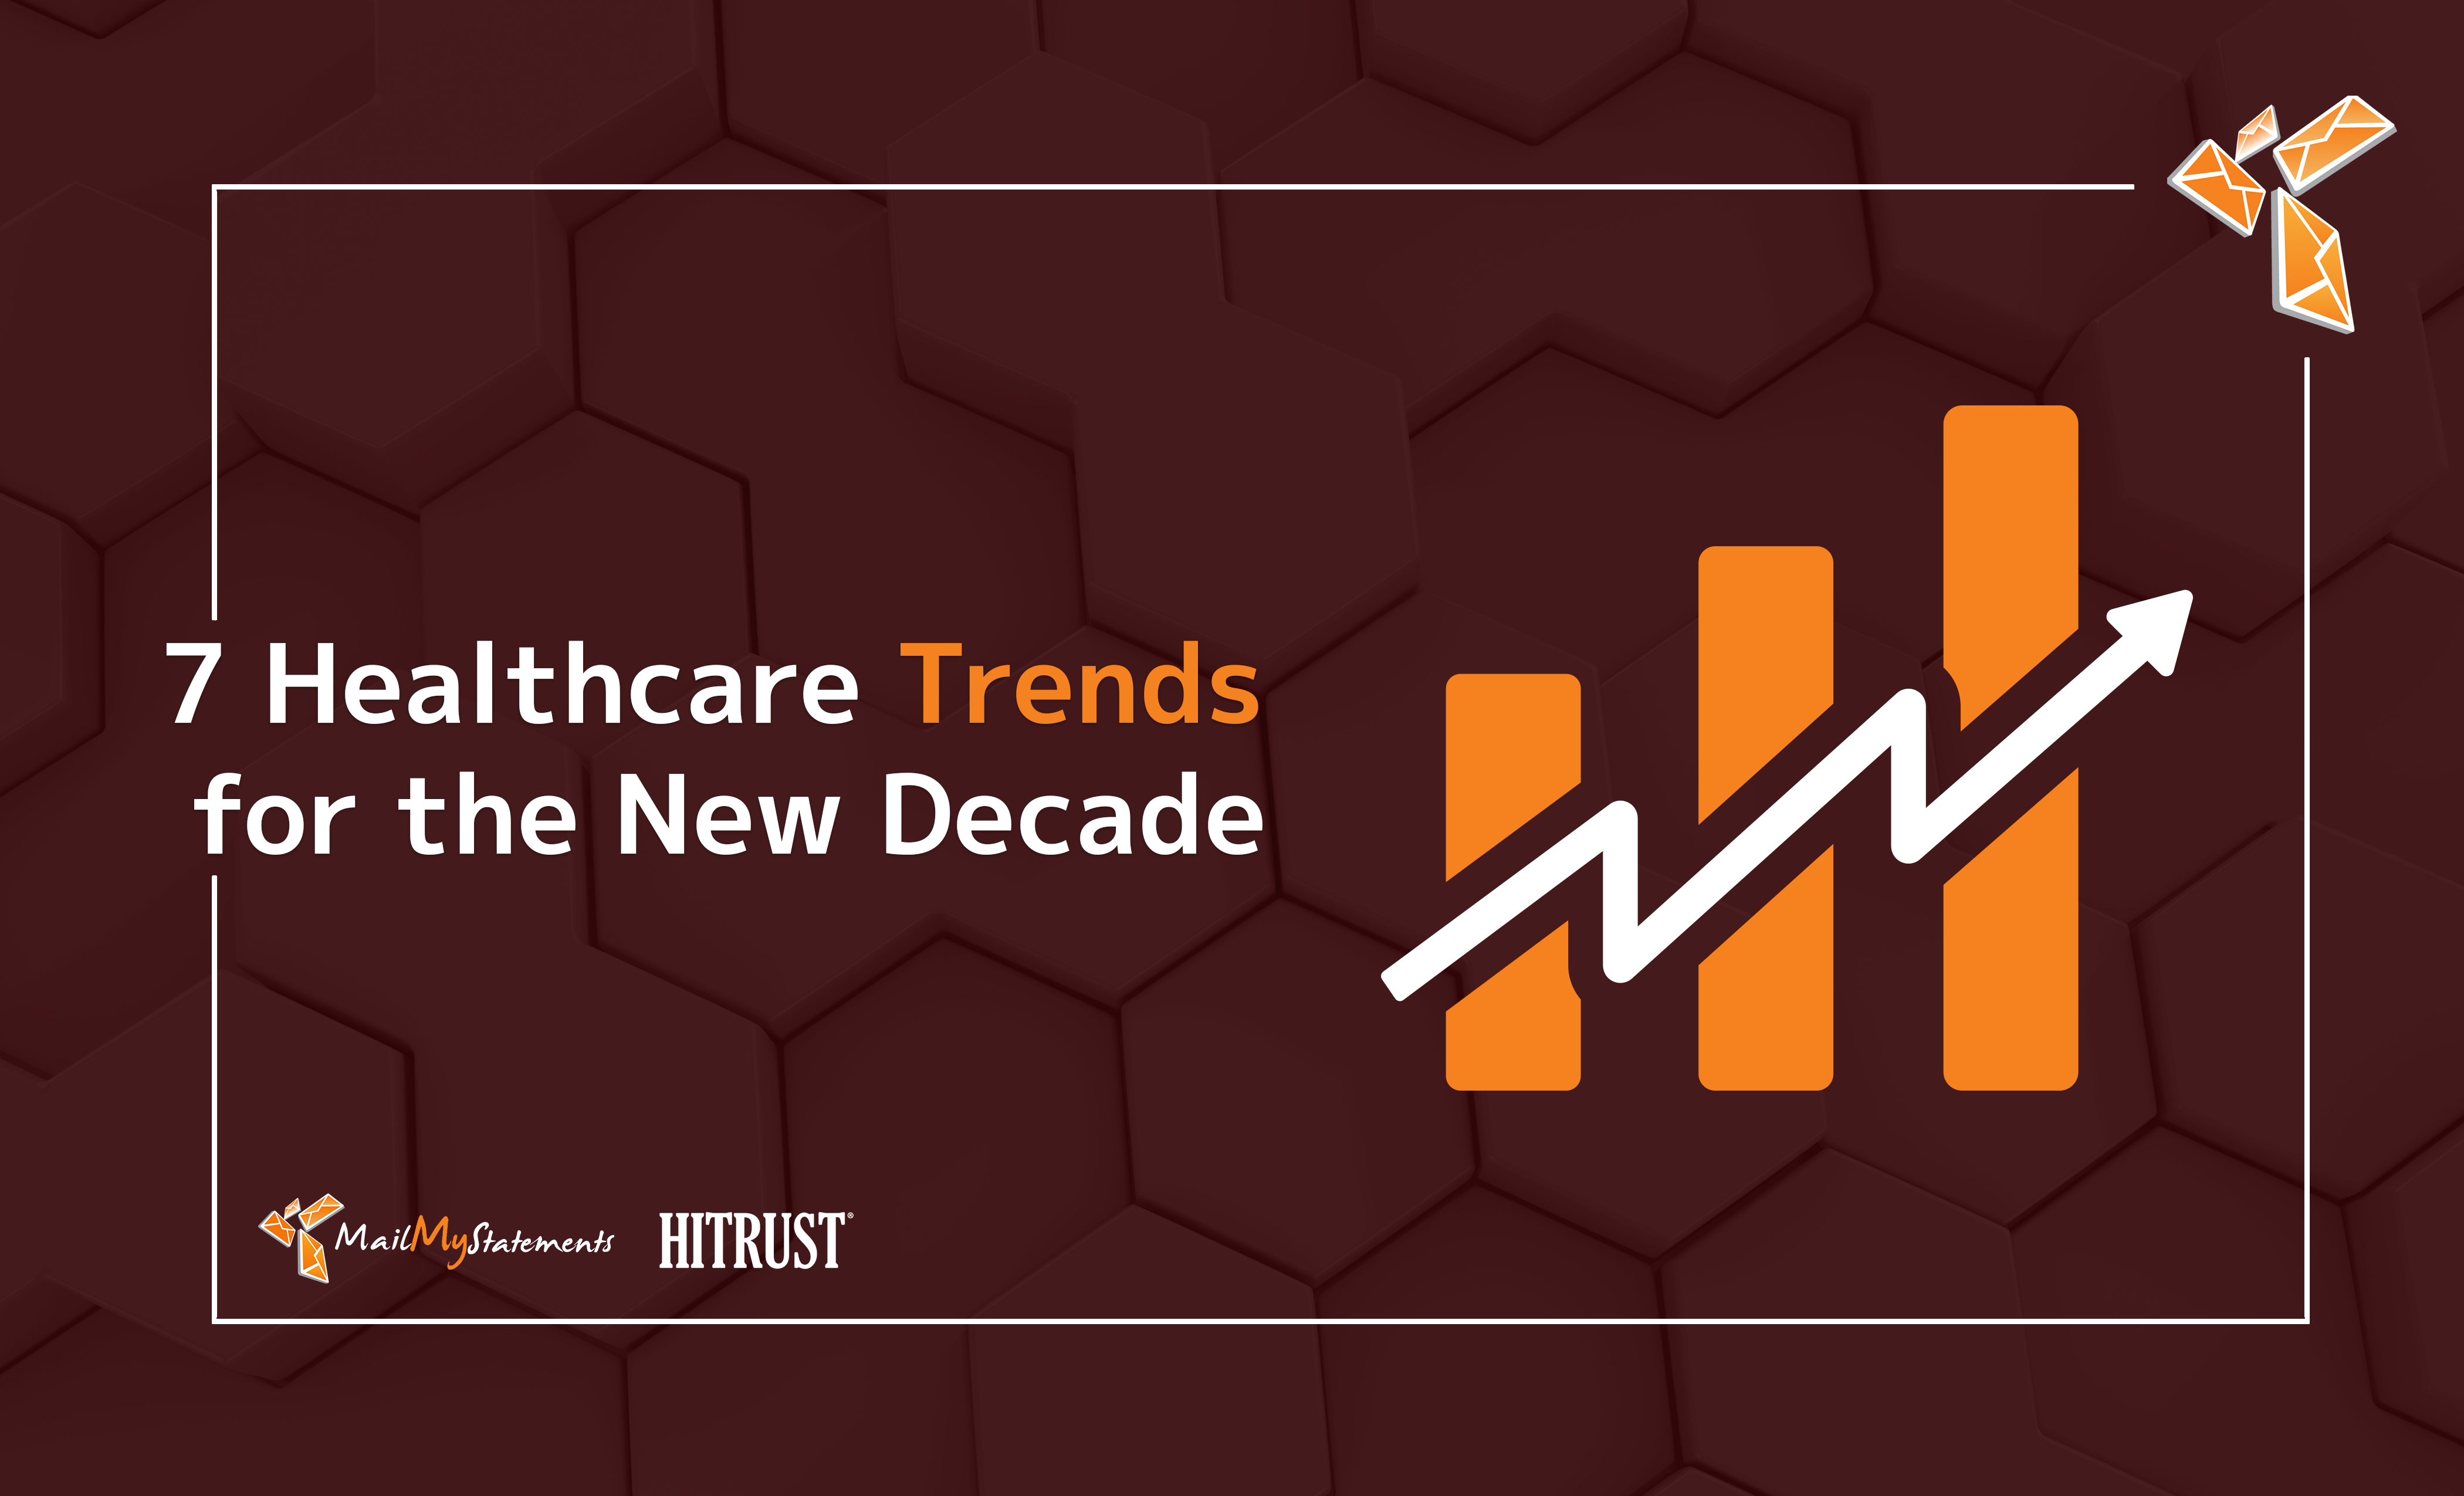 7 Healthcare Trends for the New Decade